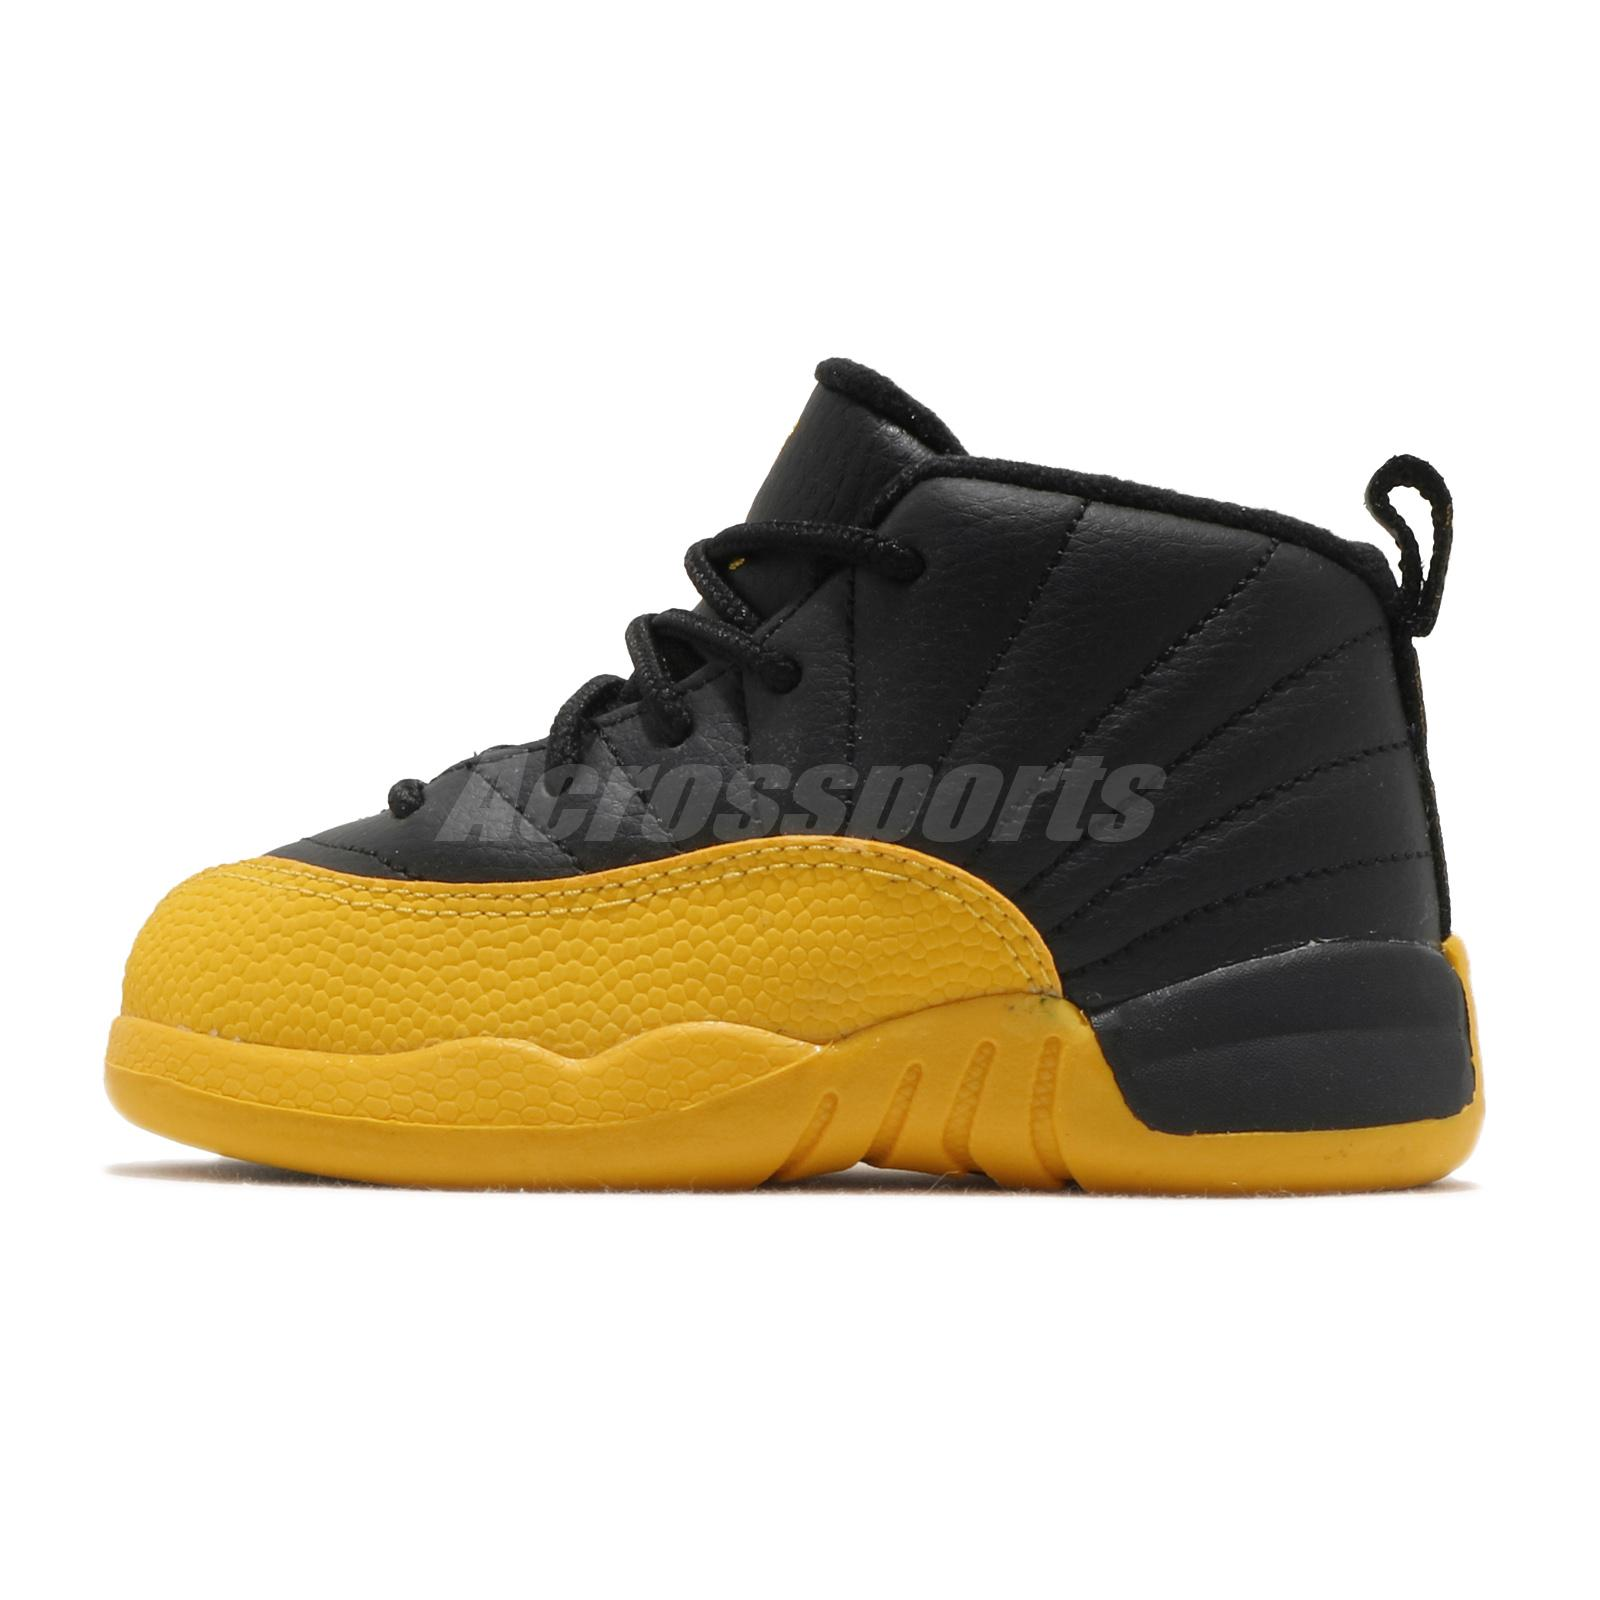 Nike Air Jordan 12 Retro Td Xii University Gold Black Toddler